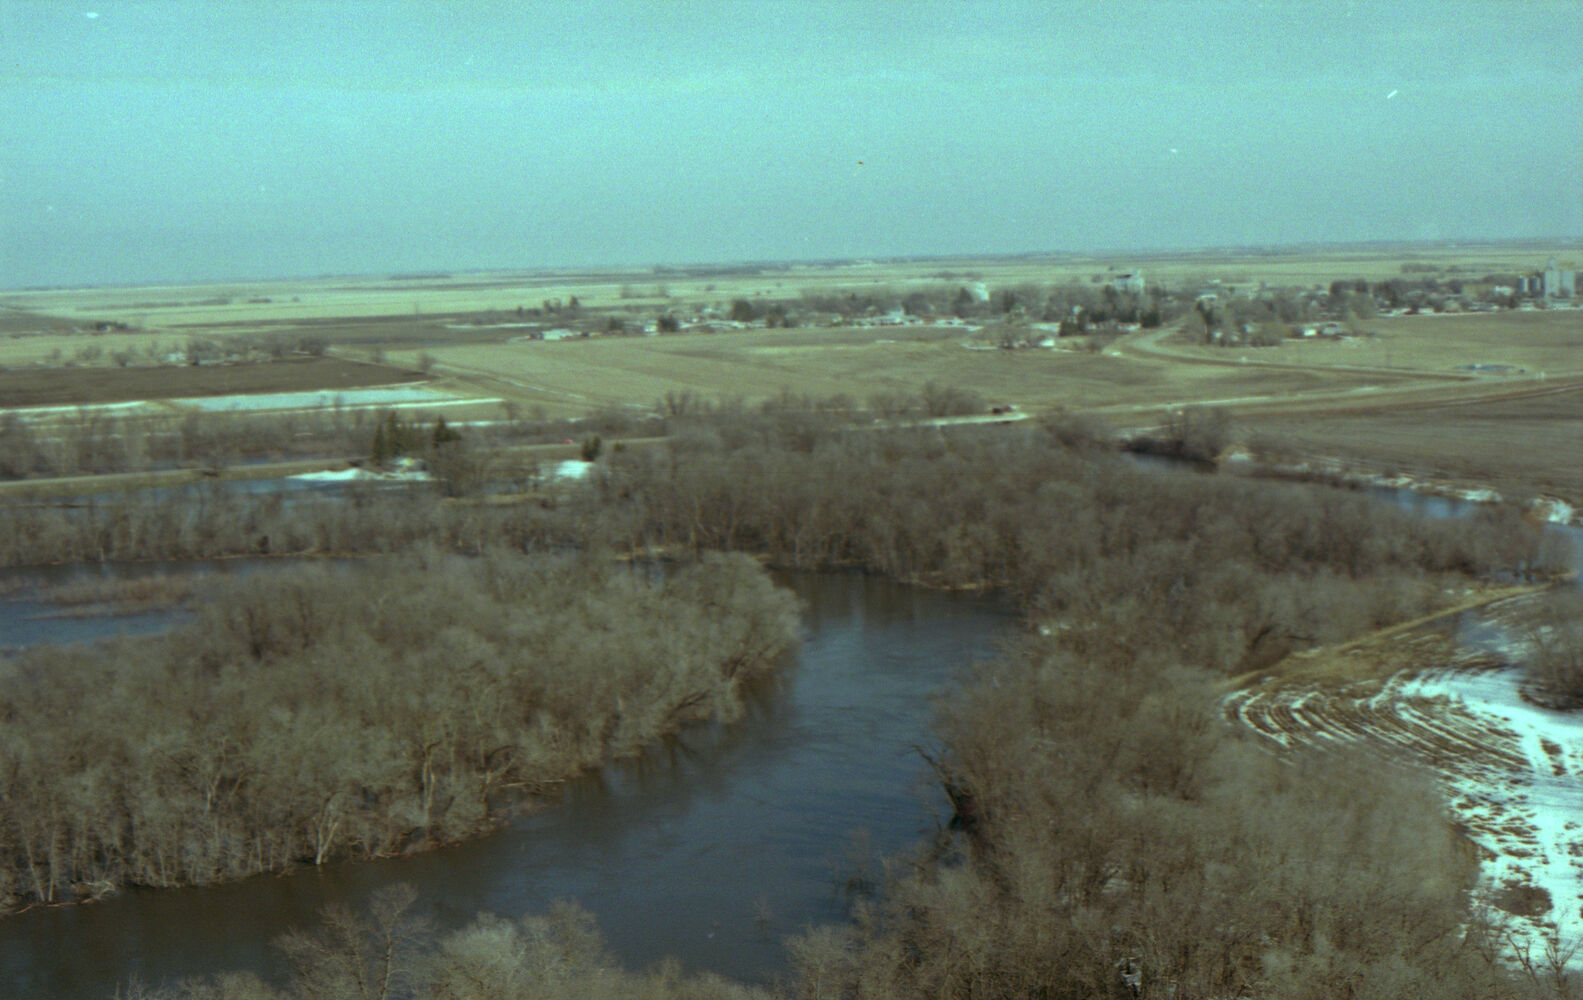 Rising floodwaters are seen from the air in the Souris or Melita area. (Dirk Aberson / Brandon Sun archives, April 12, 1995)